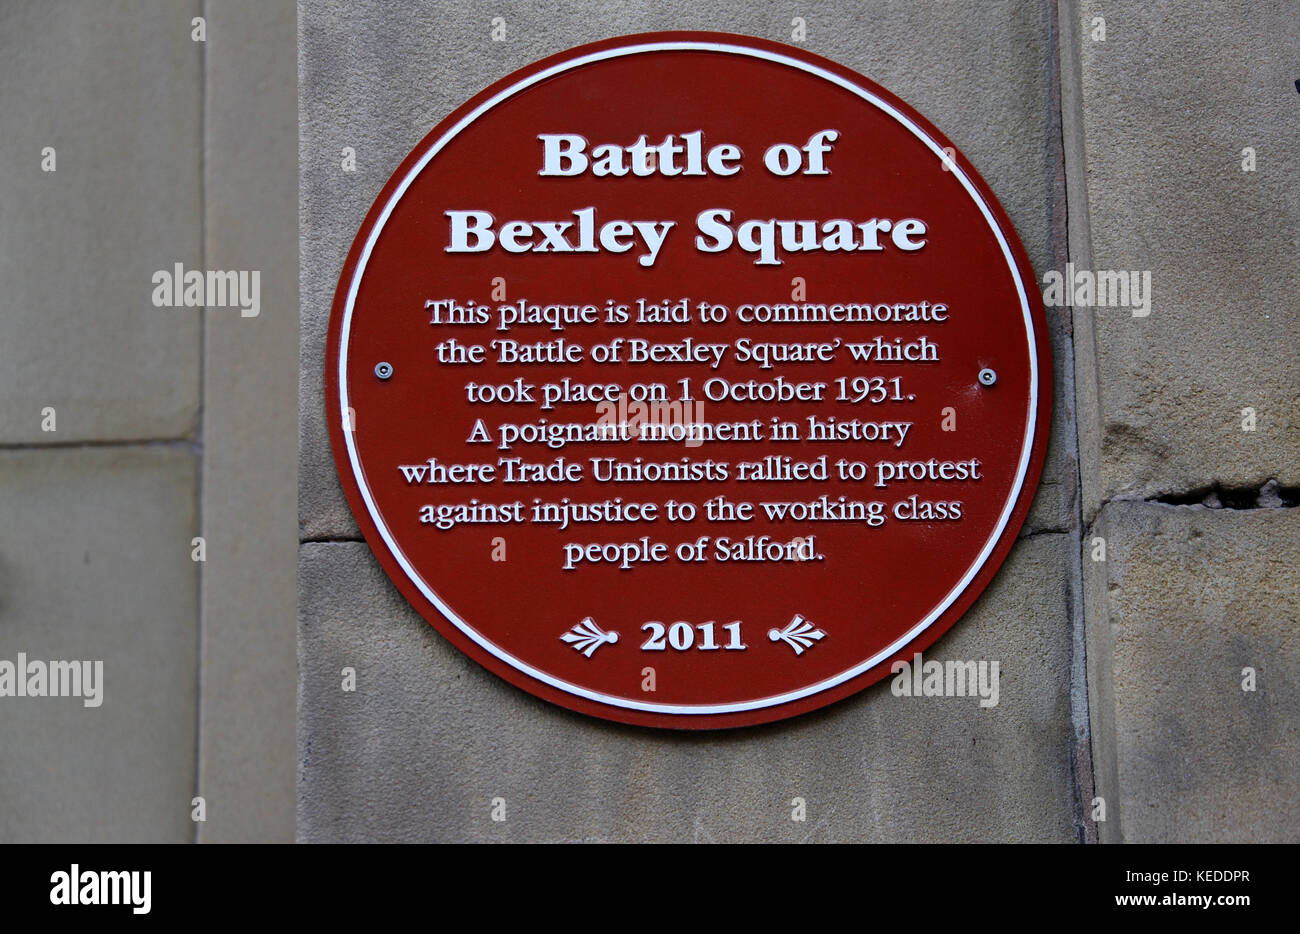 Battle of Bexley Square Plaque at Salford - Stock Image